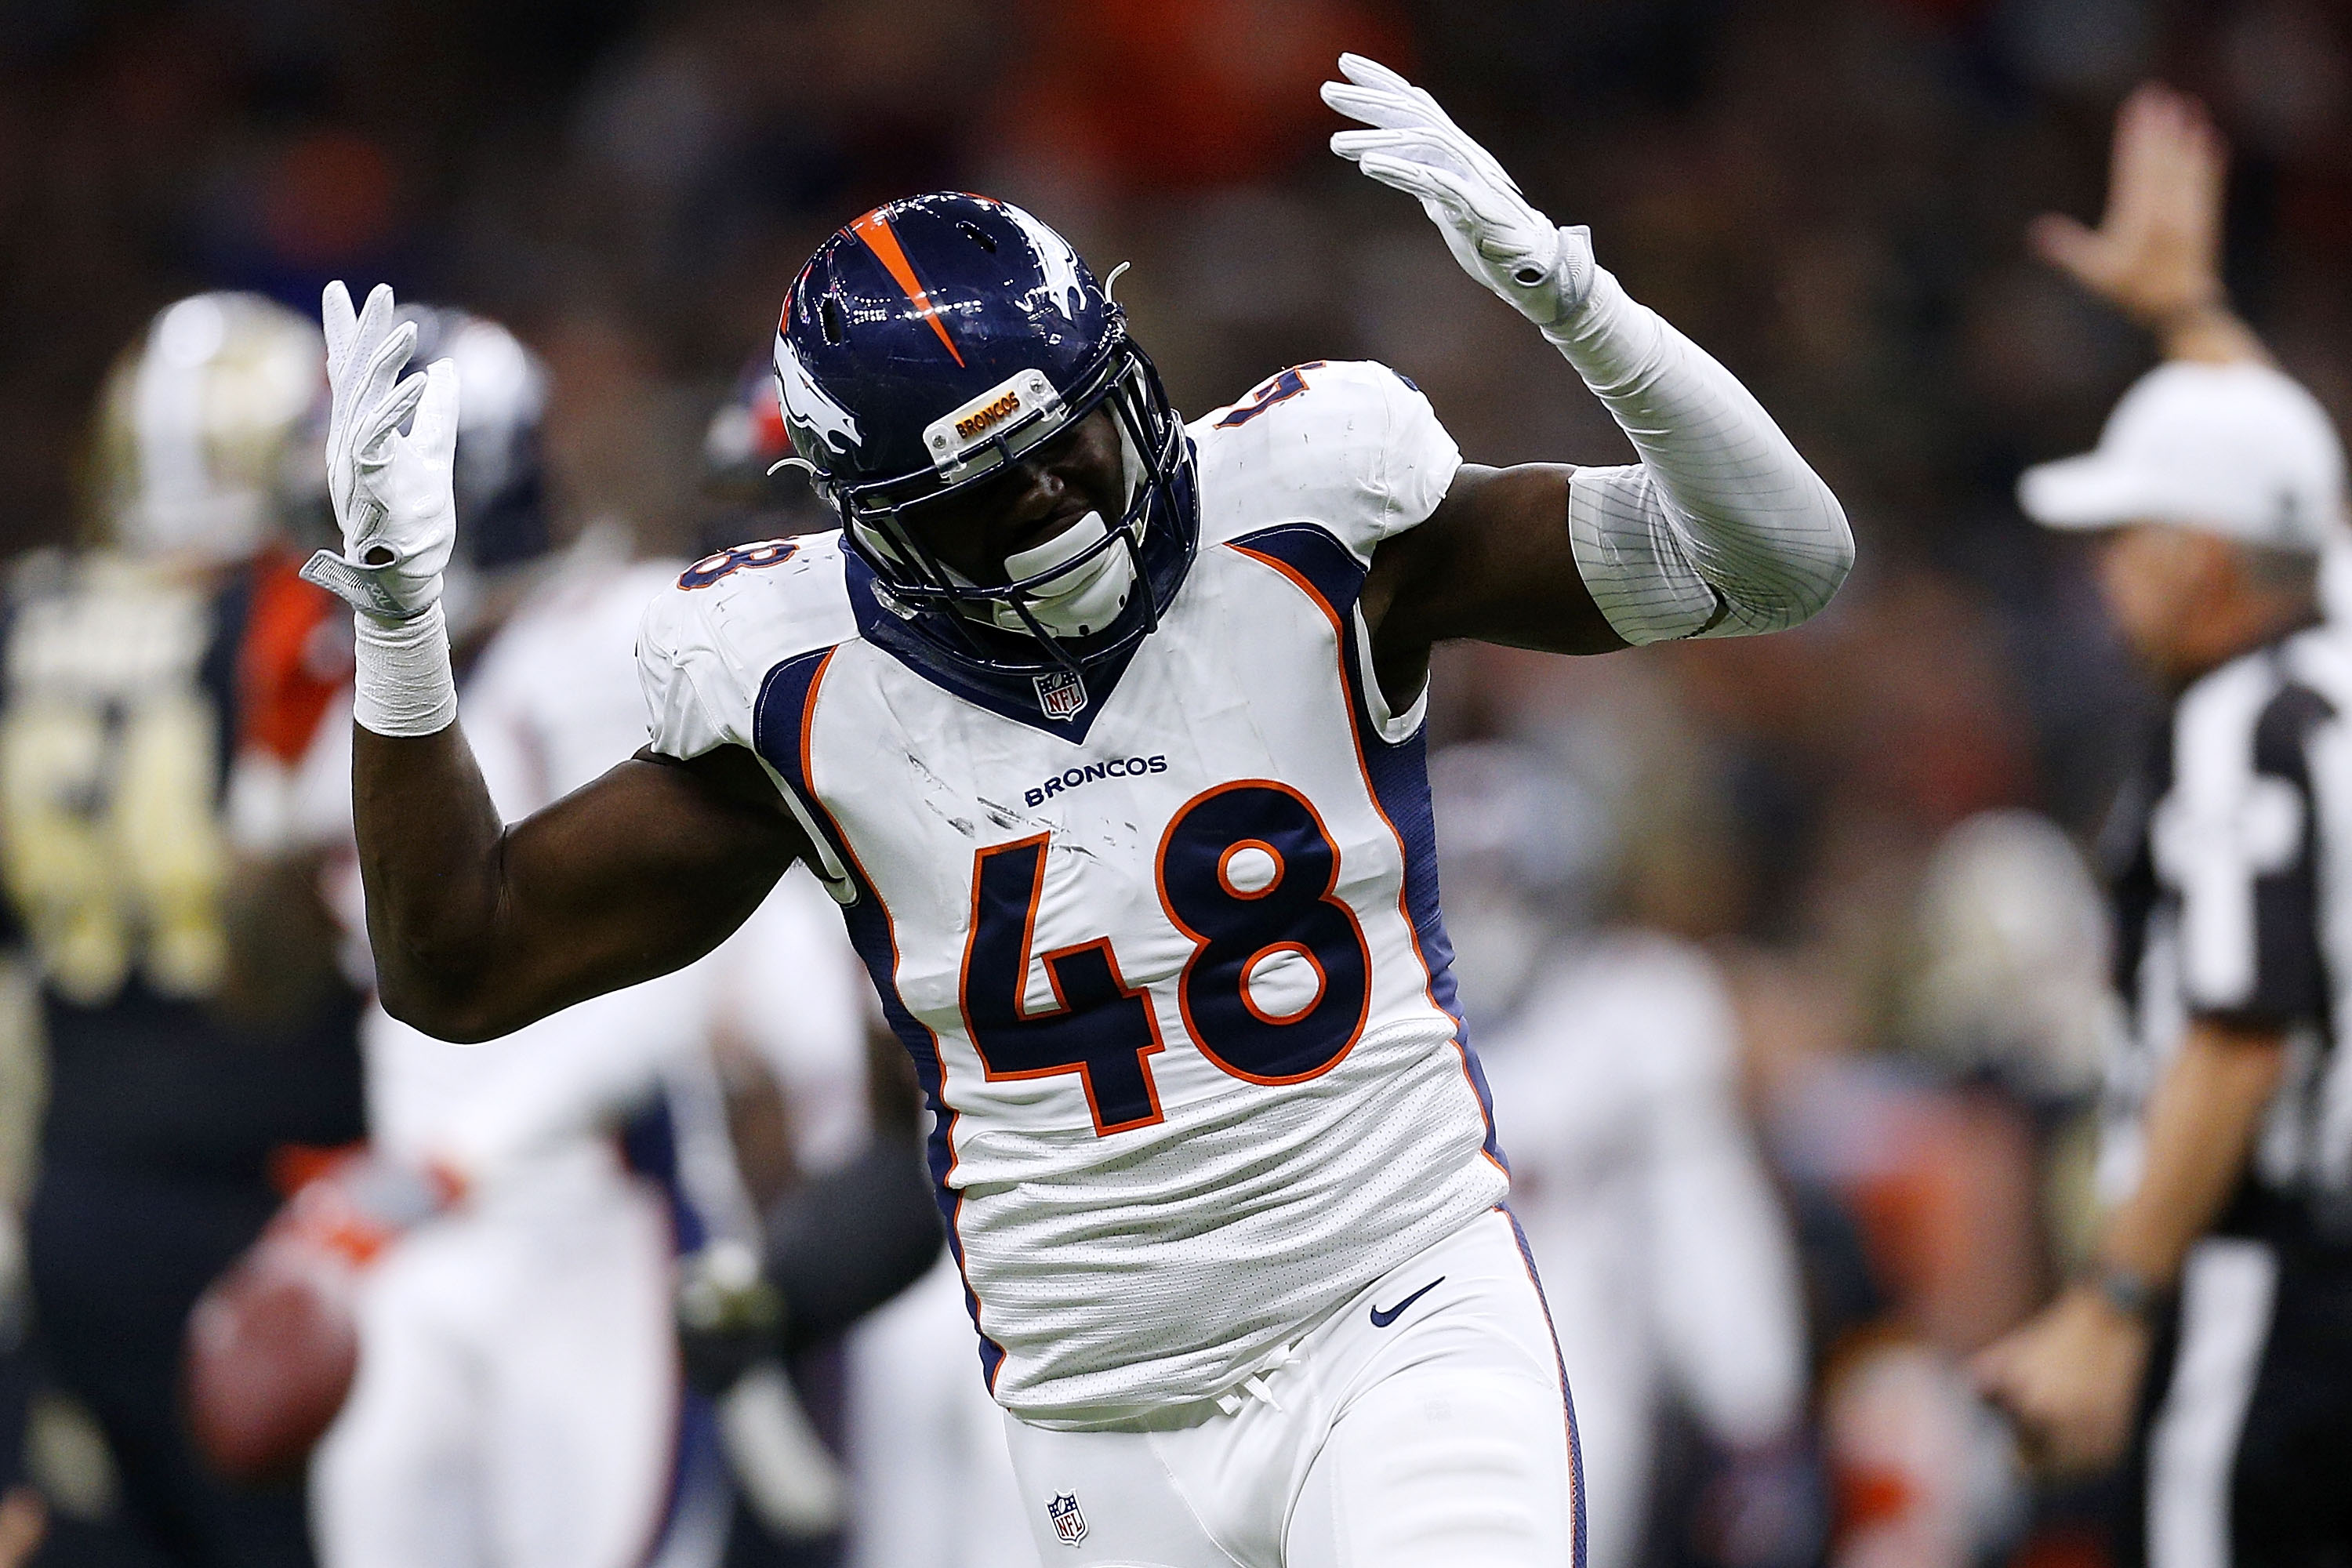 NEW ORLEANS, LA - NOVEMBER 13: Shaquil Barrett #48 of the Denver Broncos celebrates a sack during the second half of a game against the New Orleans Saints at the Mercedes-Benz Superdome on November 13, 2016 in New Orleans, Louisiana. (Photo by Jonathan Bachman/Getty Images)